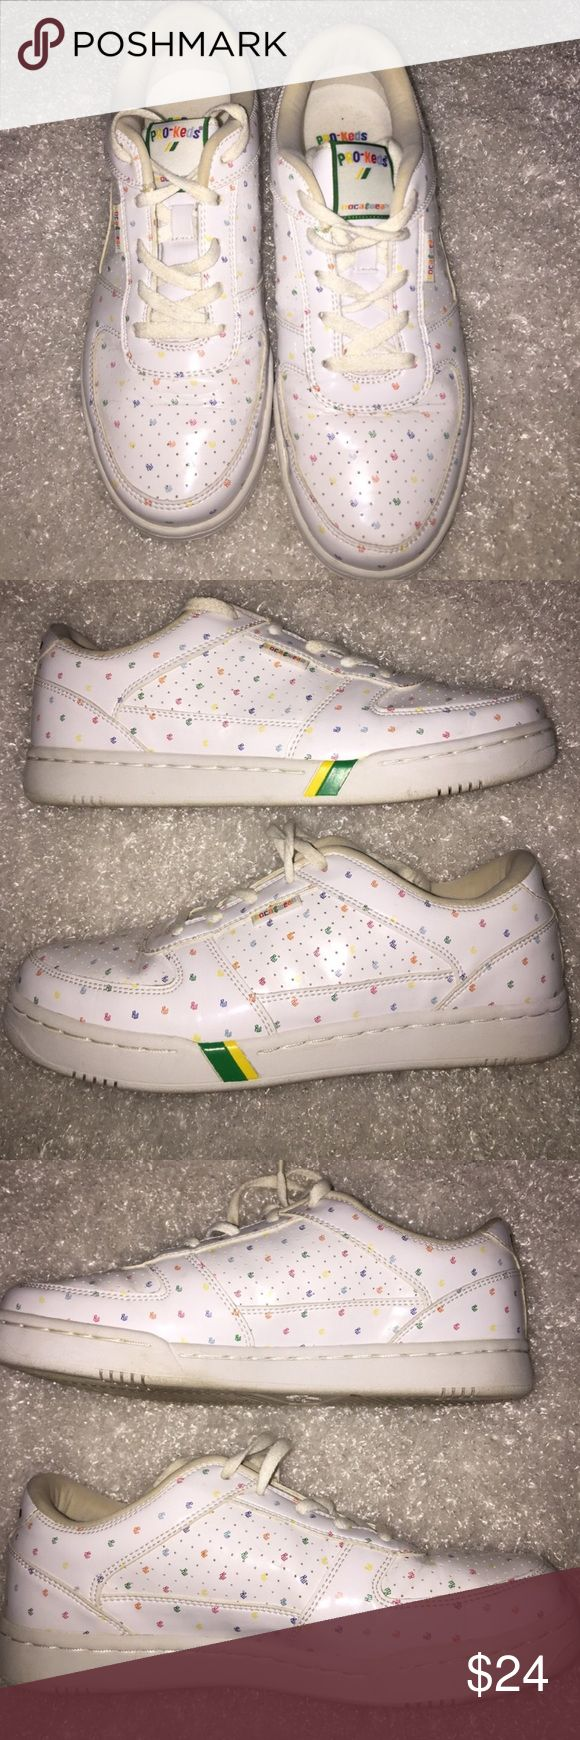 "Rocawear Pro Keds Primary Color Rainbow Sneakers White patent with signature Rocawear ""RW"" initials all over shoes in colors of red orange blue green and yellow. Very good condition. Size 7 Rocawear Shoes Sneakers"